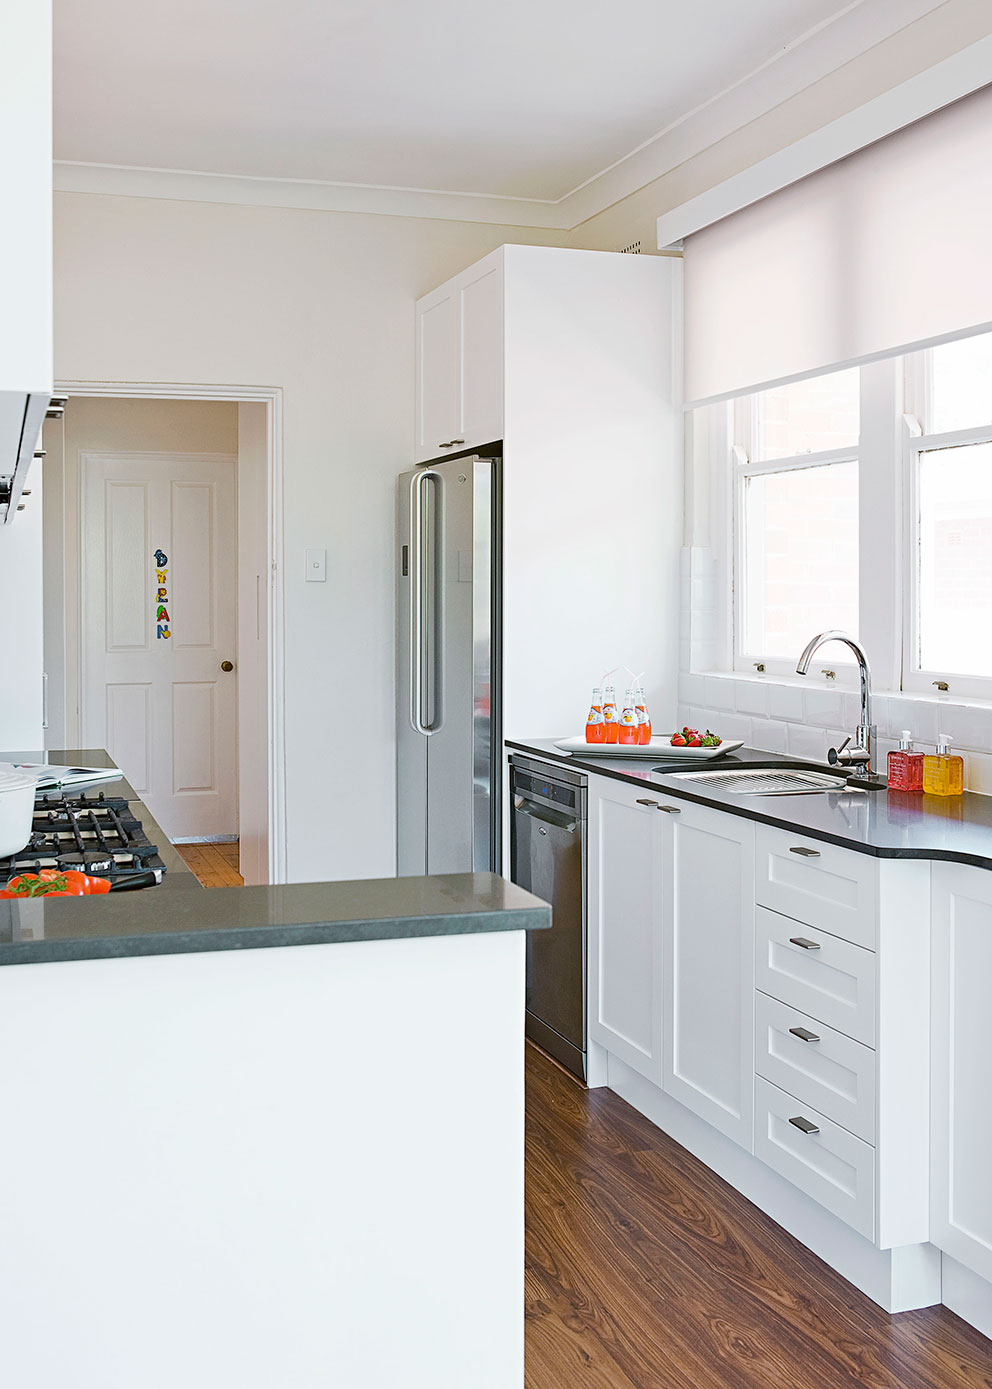 Kitchen Pictures Stainless Steel Appliances